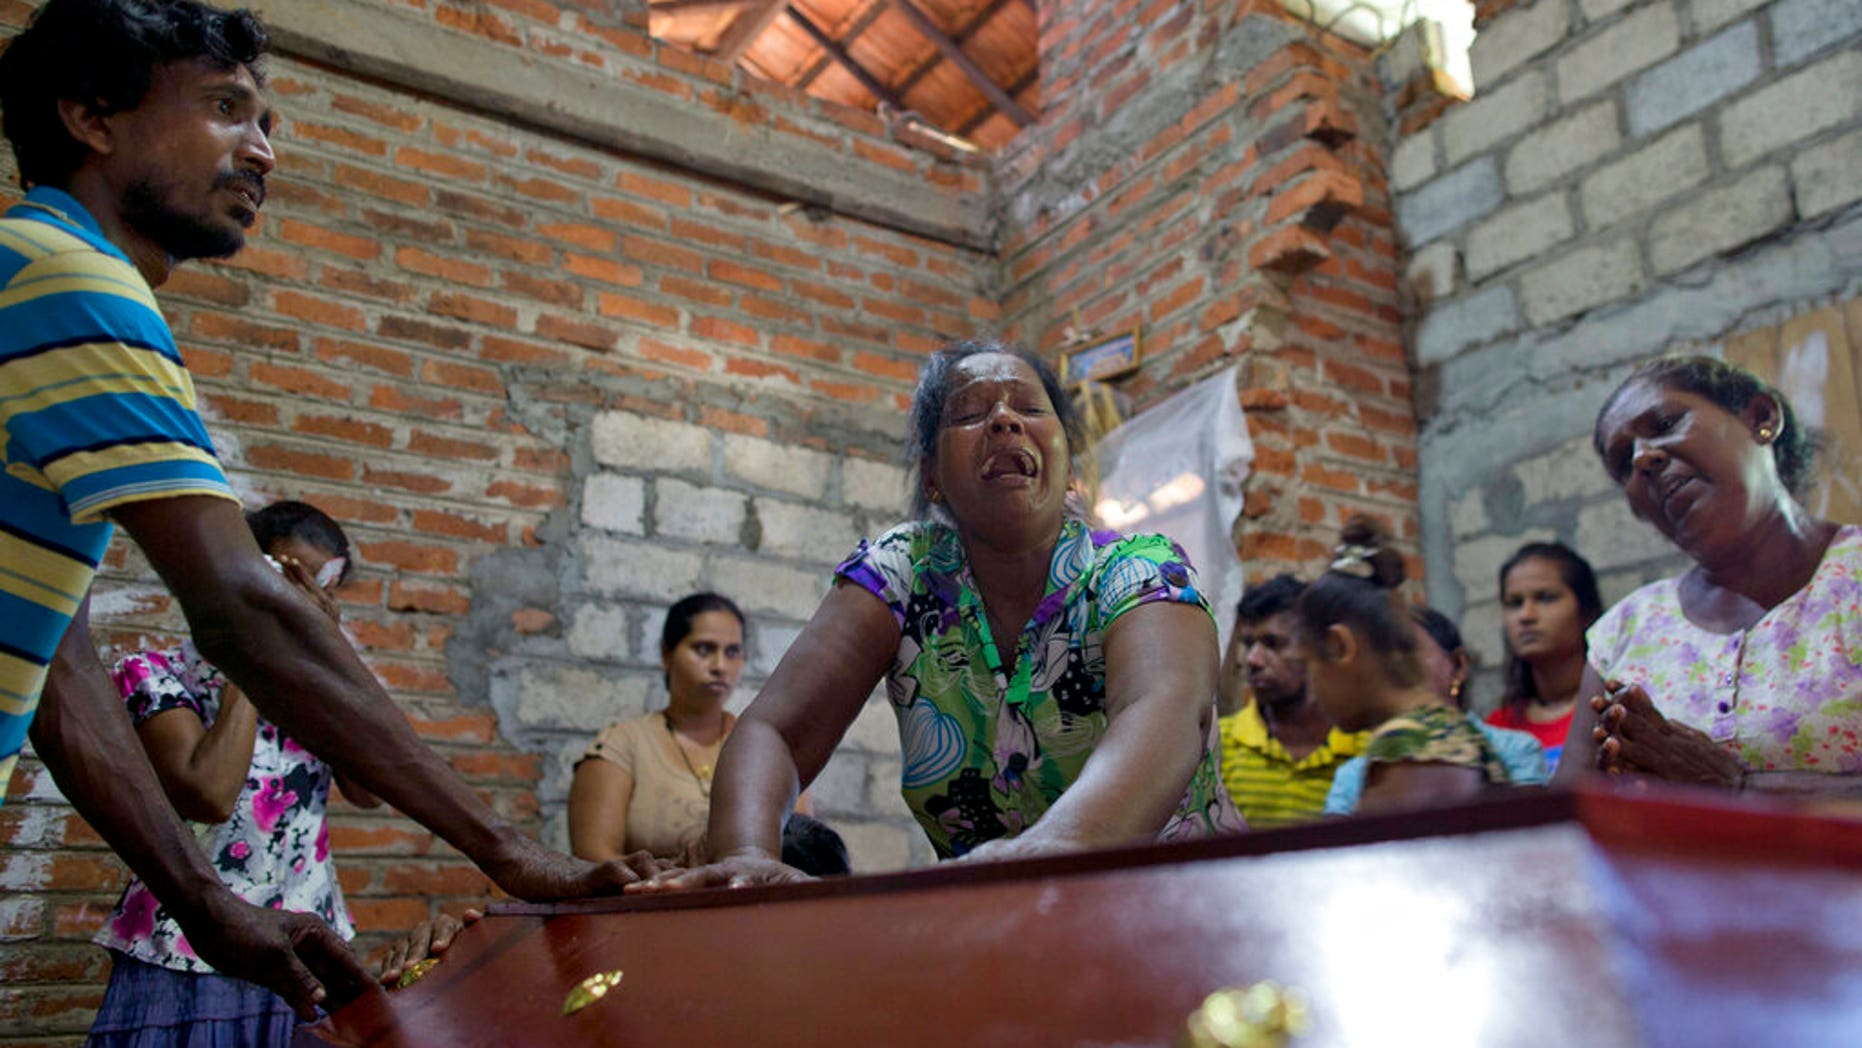 Lalitha, center, weeps over the coffin with the remains of 12-year old niece, Sneha Savindi, who was a victim of Easter Sunday bombing at St. Sebastian Church, after it returned home in Negombo, Sri Lanka, Monday, April 22, 2019. Easter Sunday bombings of churches, luxury hotels and other sites was Sri Lanka's deadliest violence since a devastating civil war in the South Asian island nation ended a decade ago. (AP Photo/Gemunu Amarasinghe)